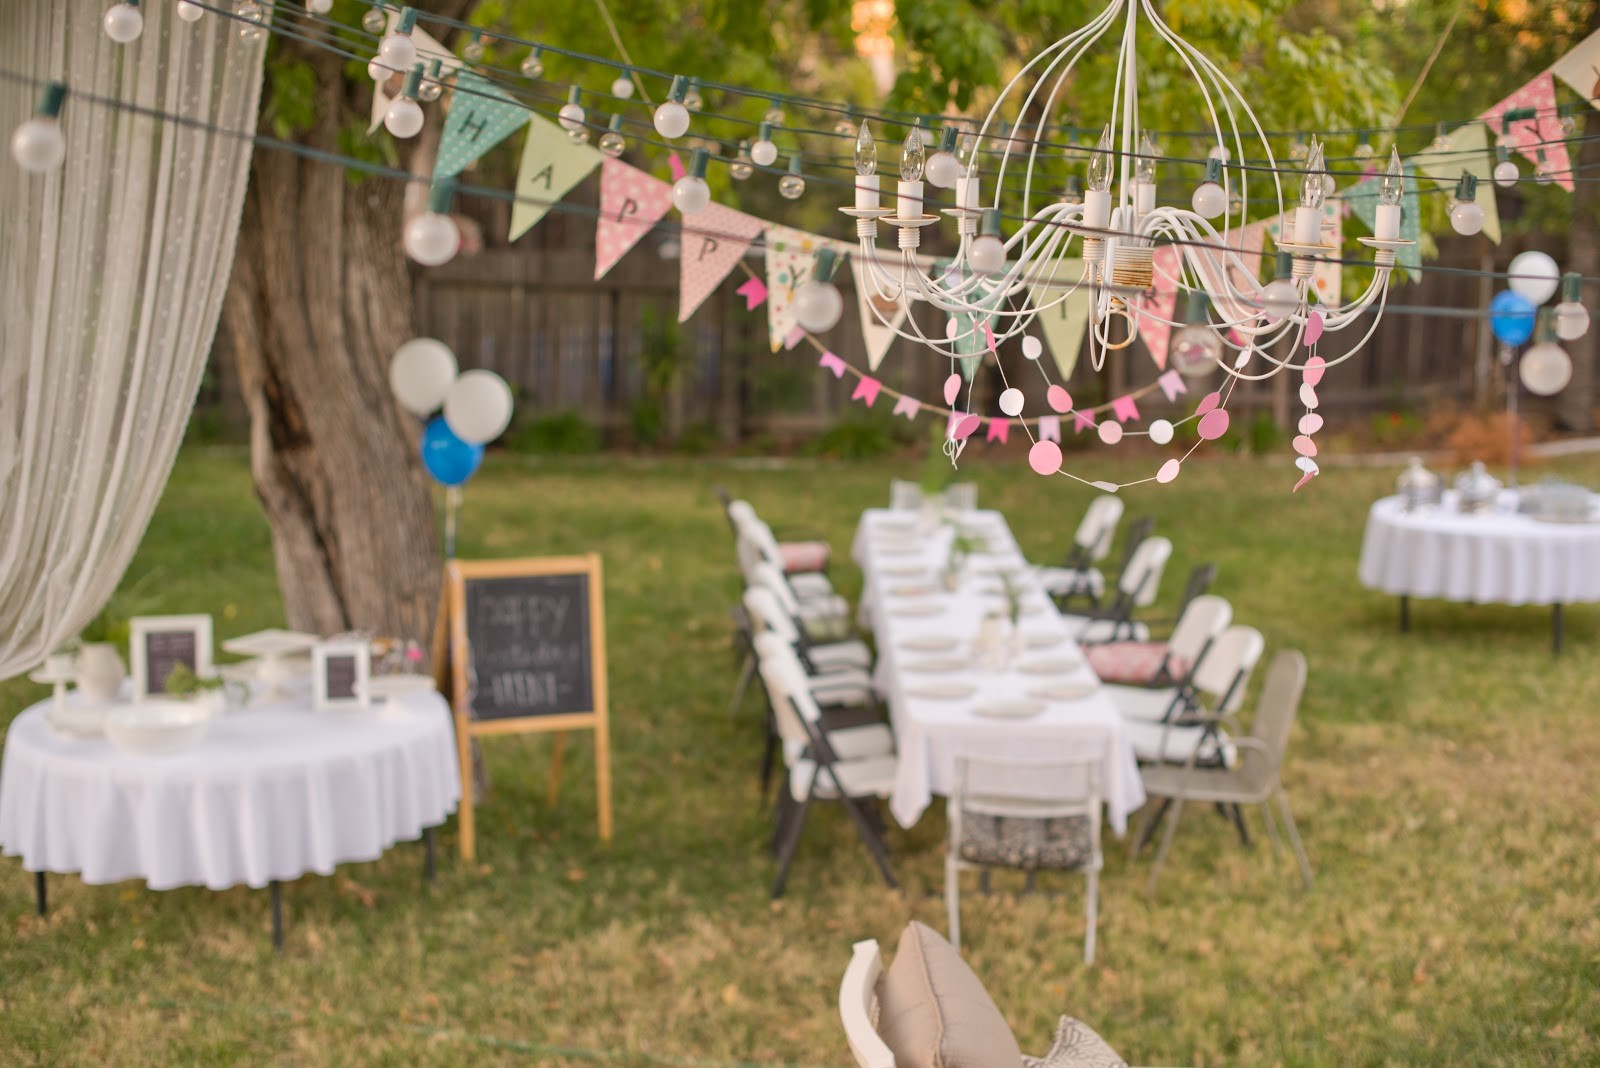 Backyard Birthday Party Ideas For Adults Amazing With Photo Of intended for Backyard Birthday Ideas